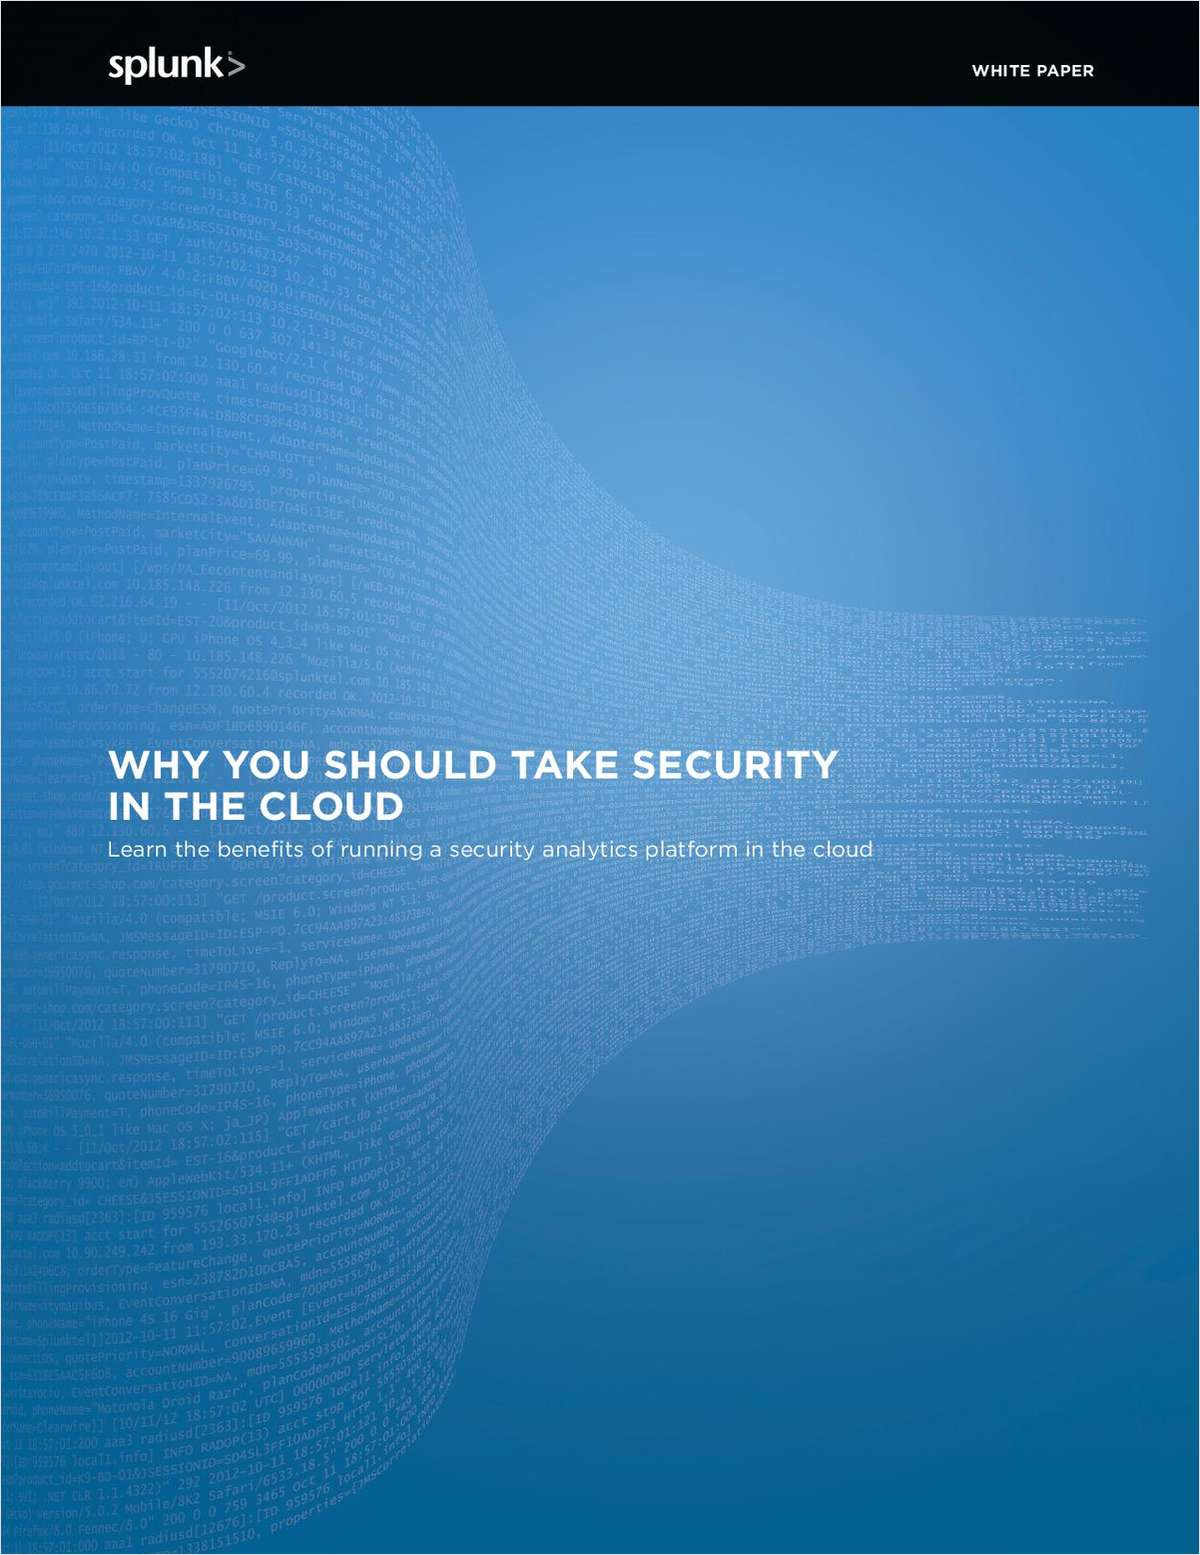 Why You Should Take Security to the Cloud